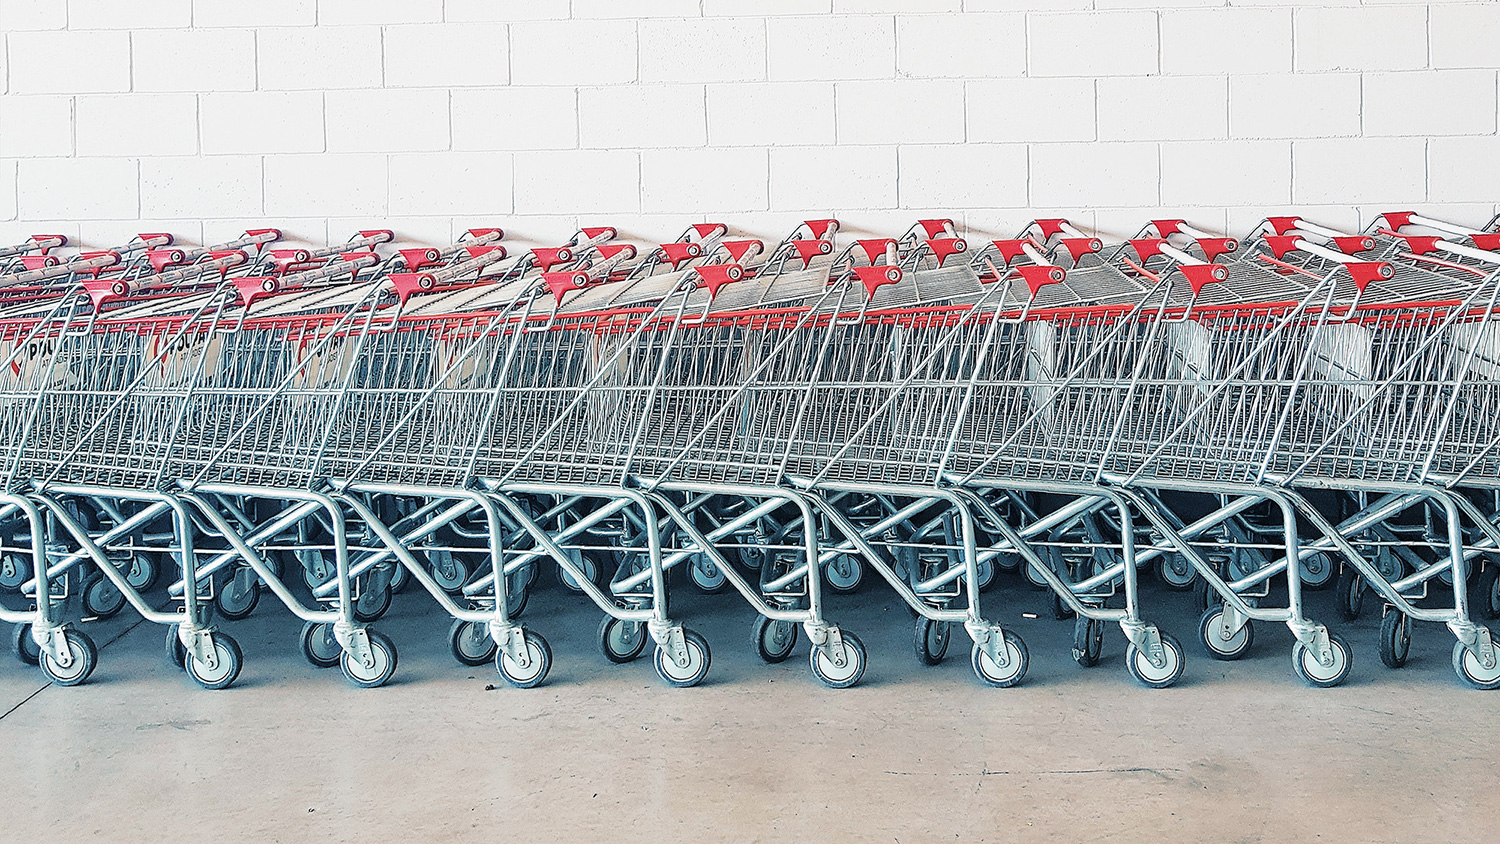 A row of shopping trolleys against a wall